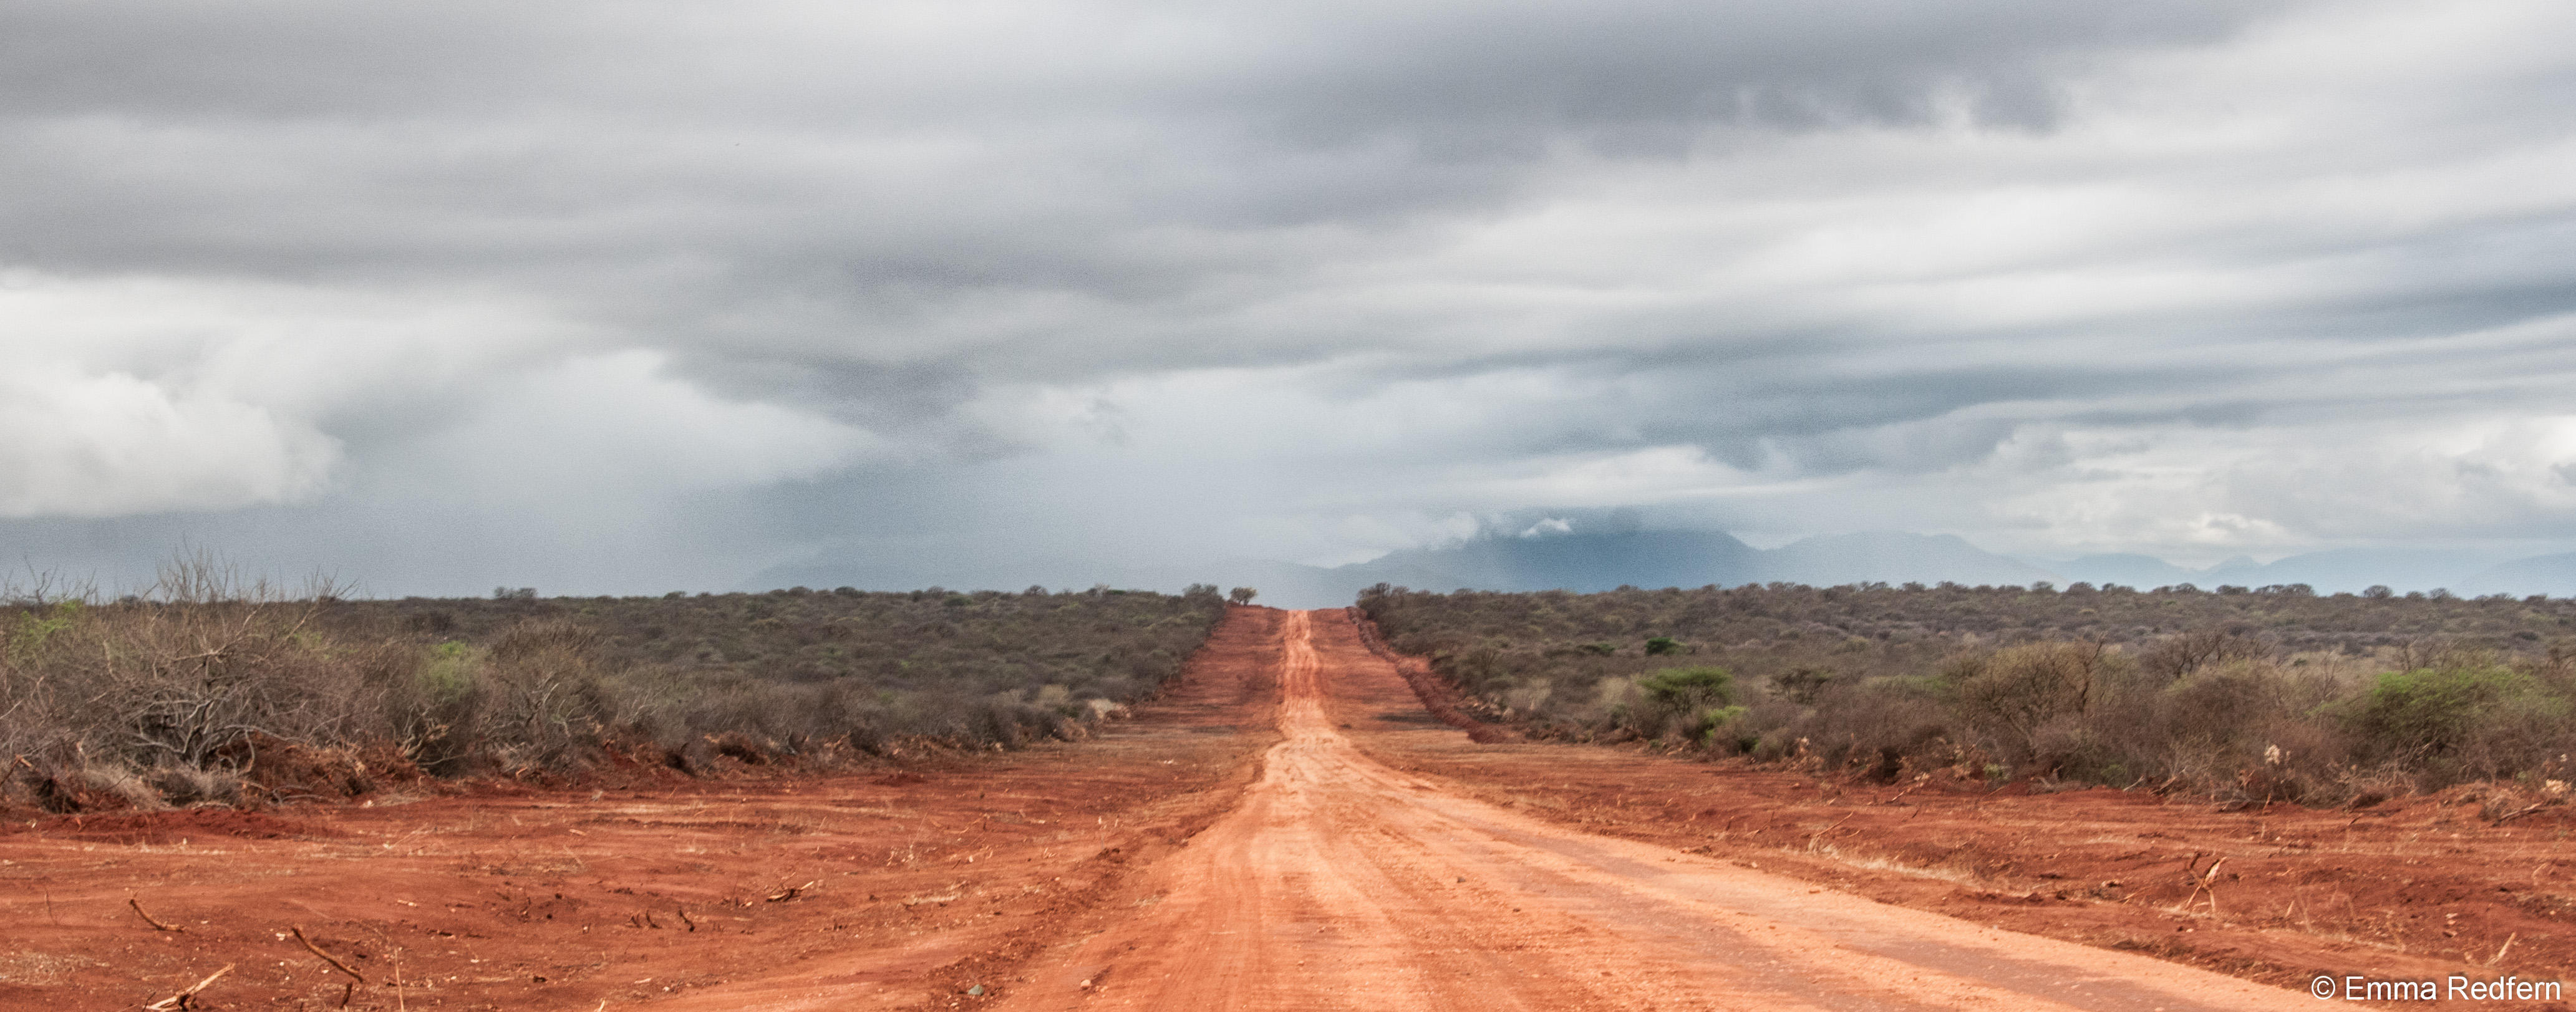 Moyale road cleared for development